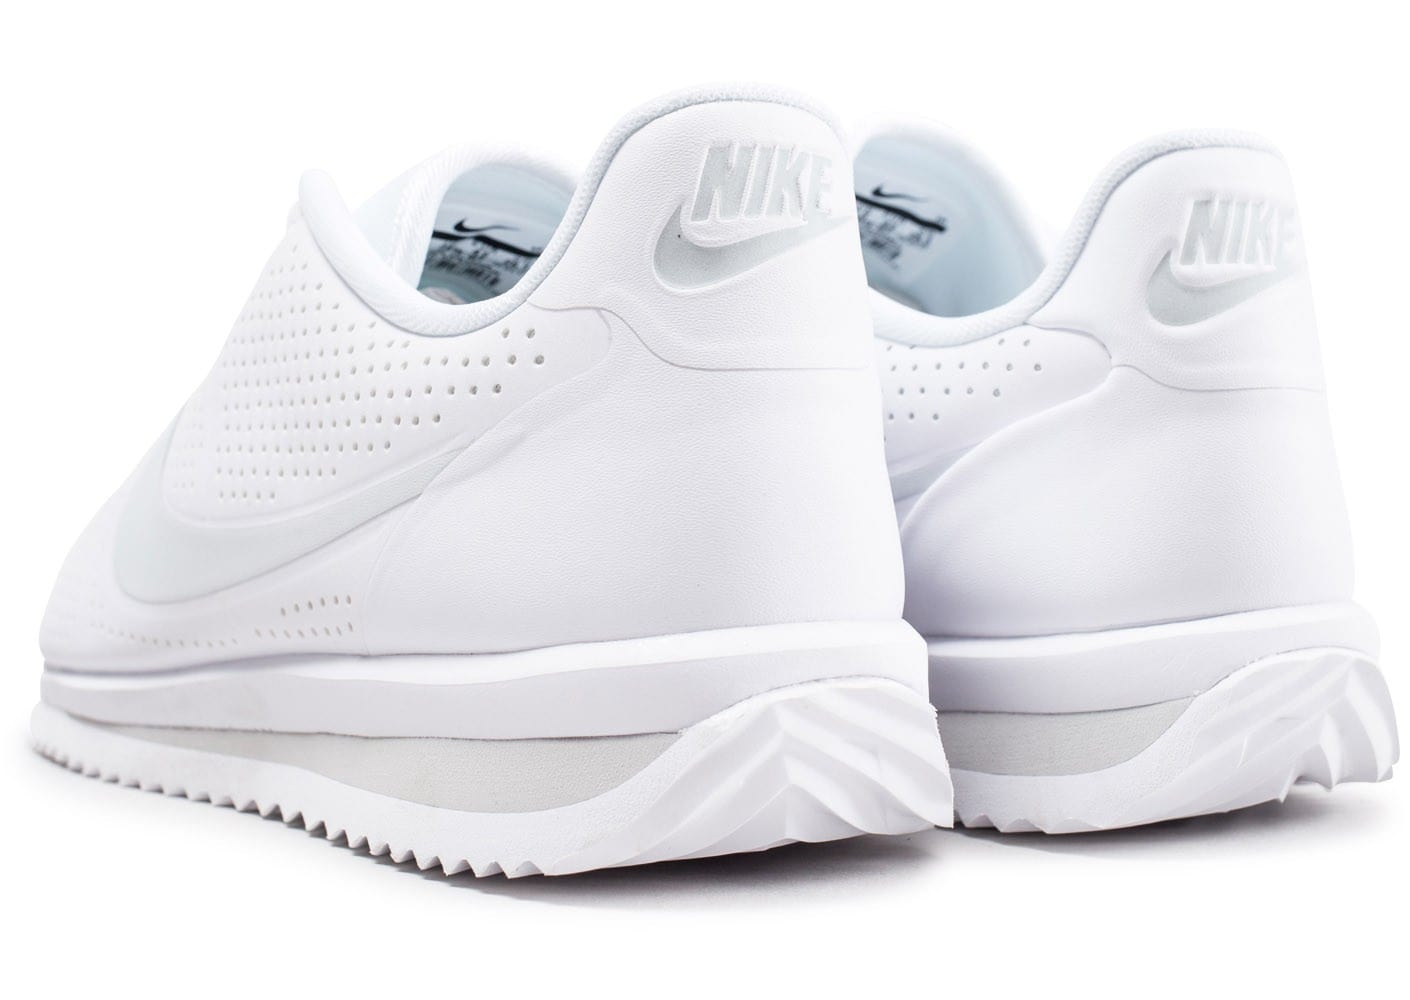 pretty nice 7770b 92f8a ... Chaussures Nike Cortez Ultra Moire blanche vue dessous ...